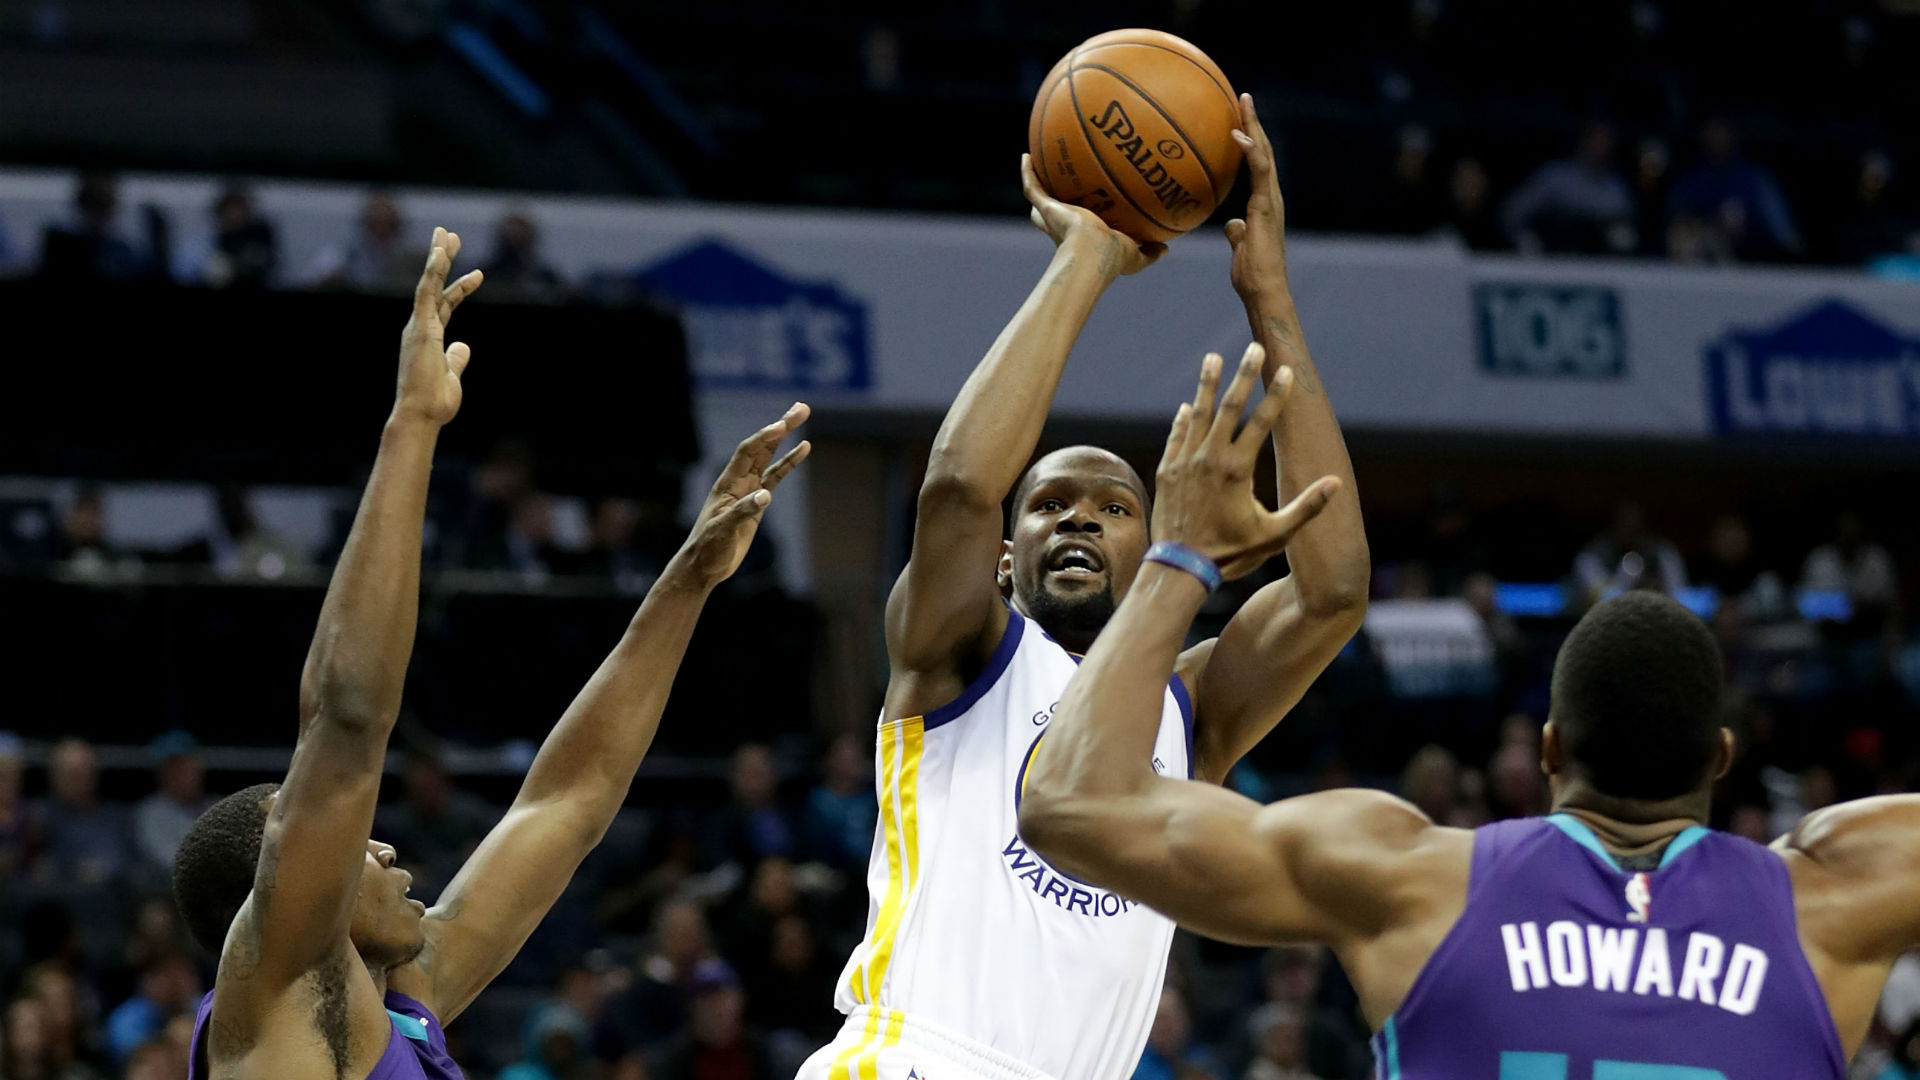 Warriors' Kevin Durant dominates in win over Detroit